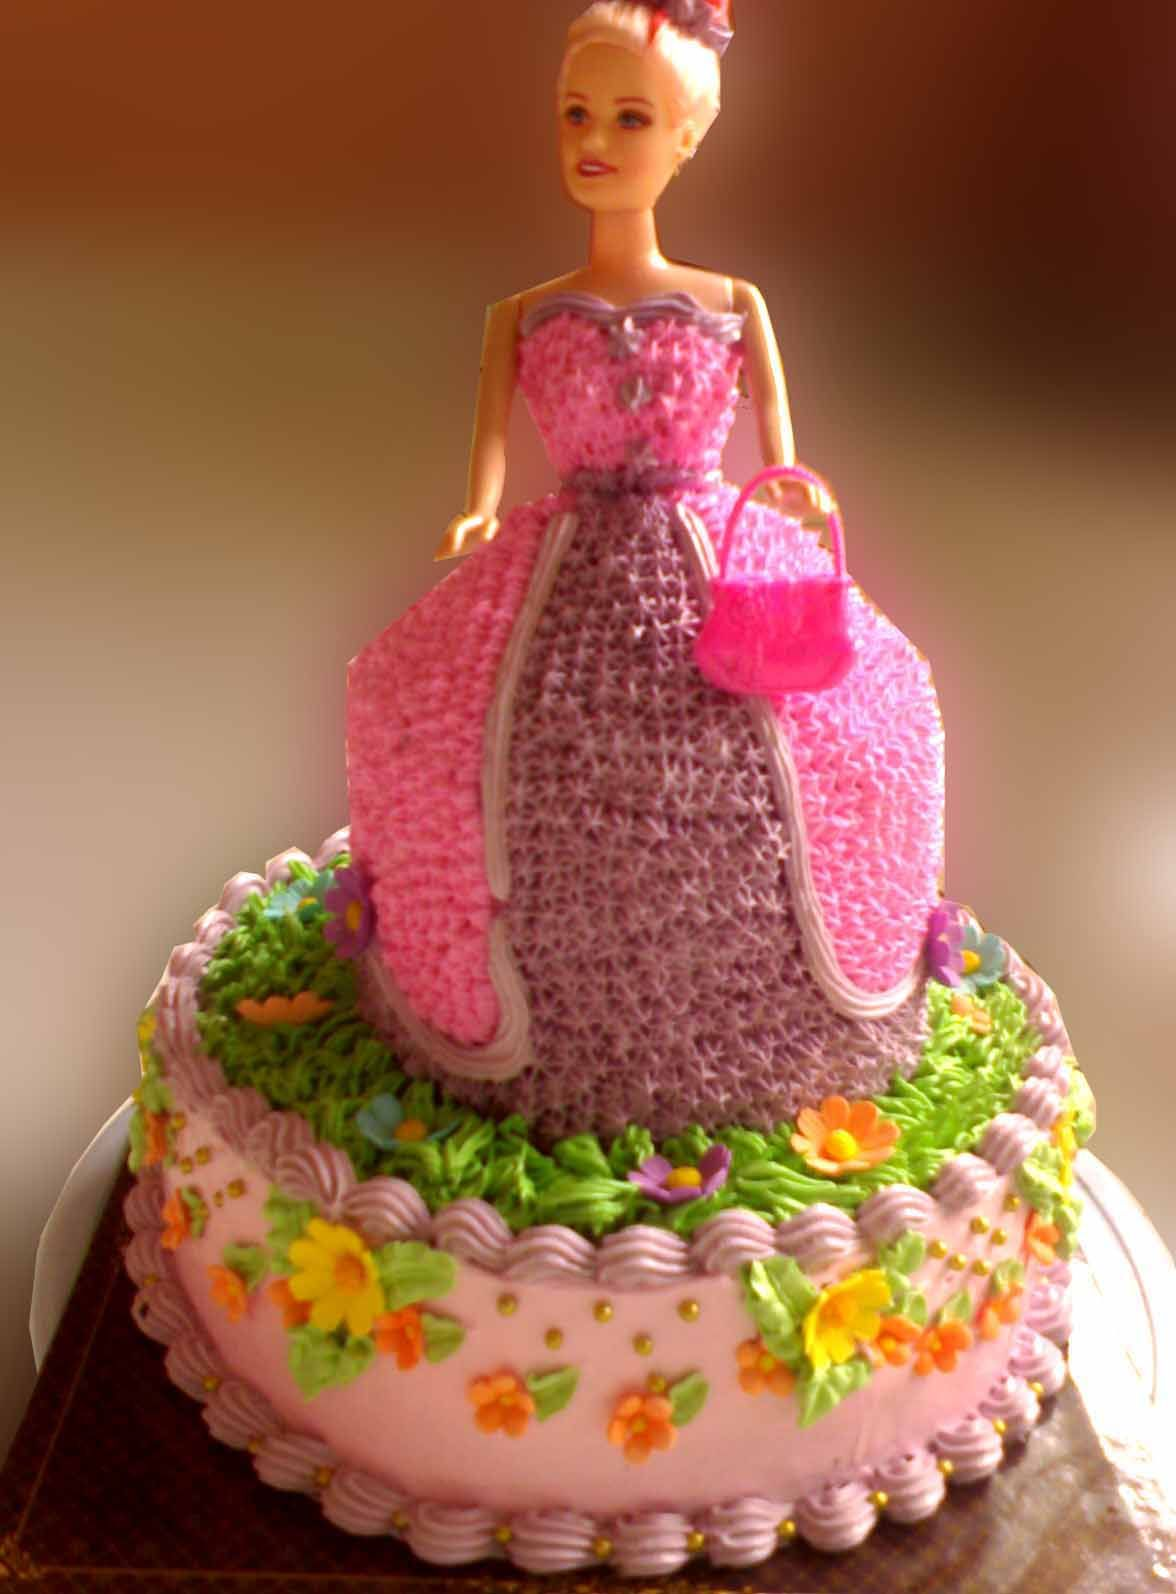 Doll Cake Images Download : Click here to download in HD Format >> Barbie Doll ...